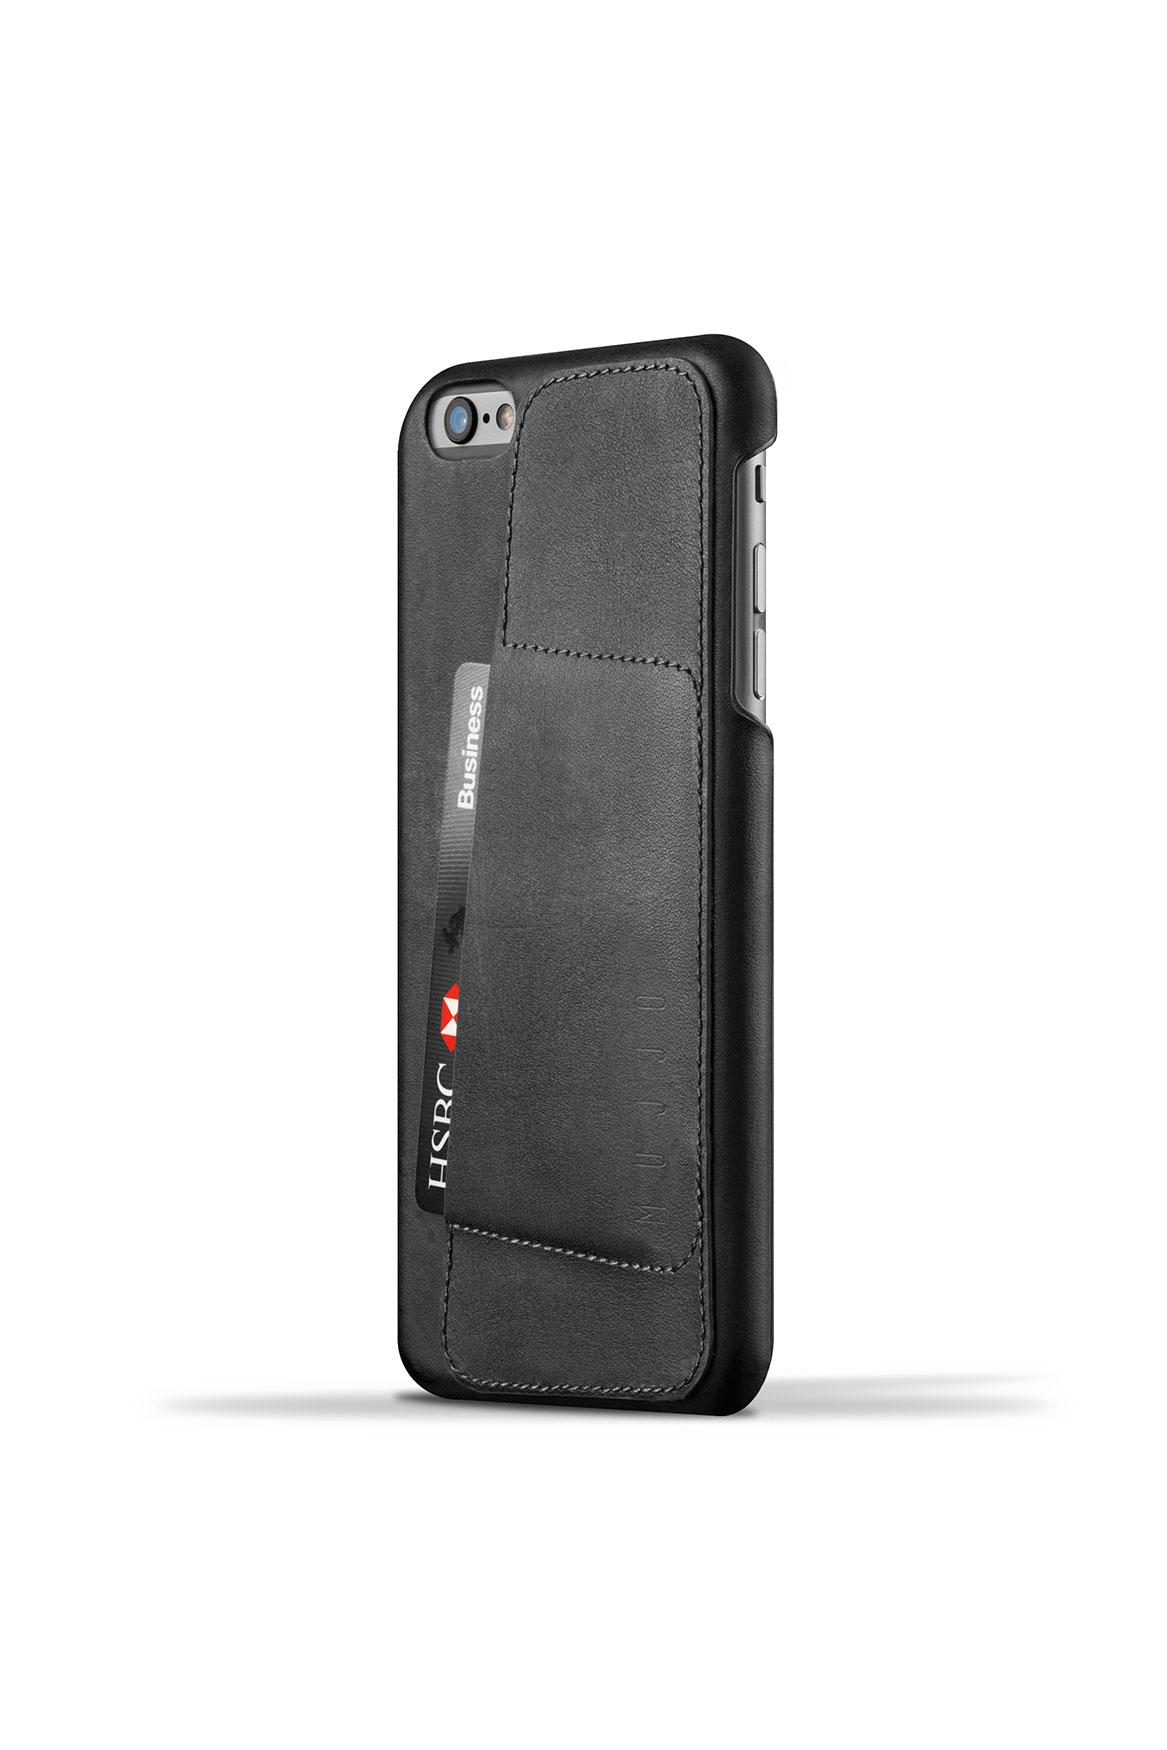 info for 4f49d 359e2 Black Leather Wallet Case 80° for iPhone 6/6s Plus by Mujjo | Mac-Ave